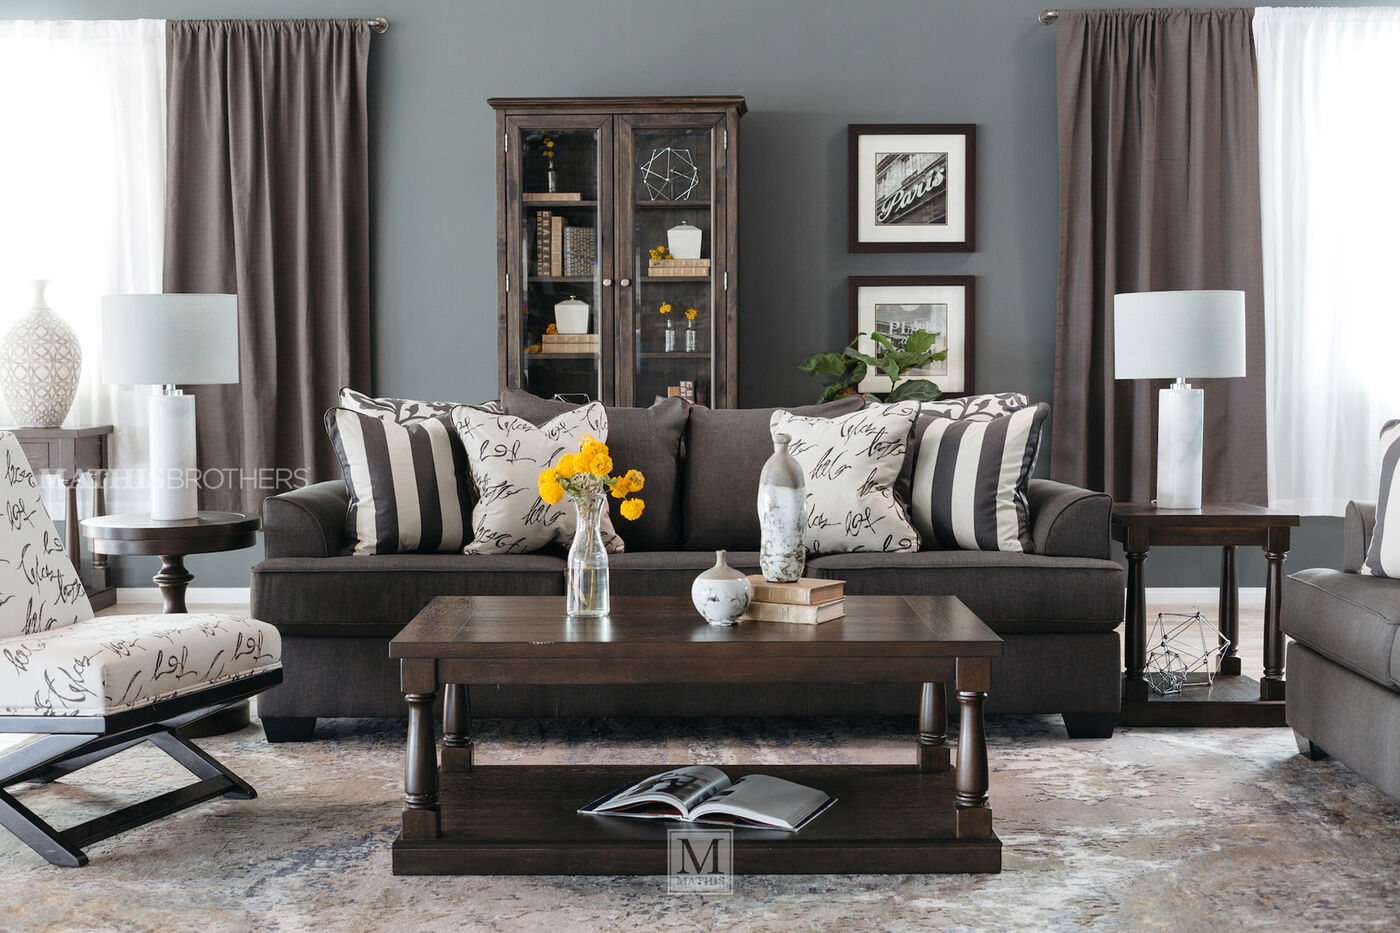 Low profile casual 96 sofa in charcoal mathis brothers for Brother v brother living room